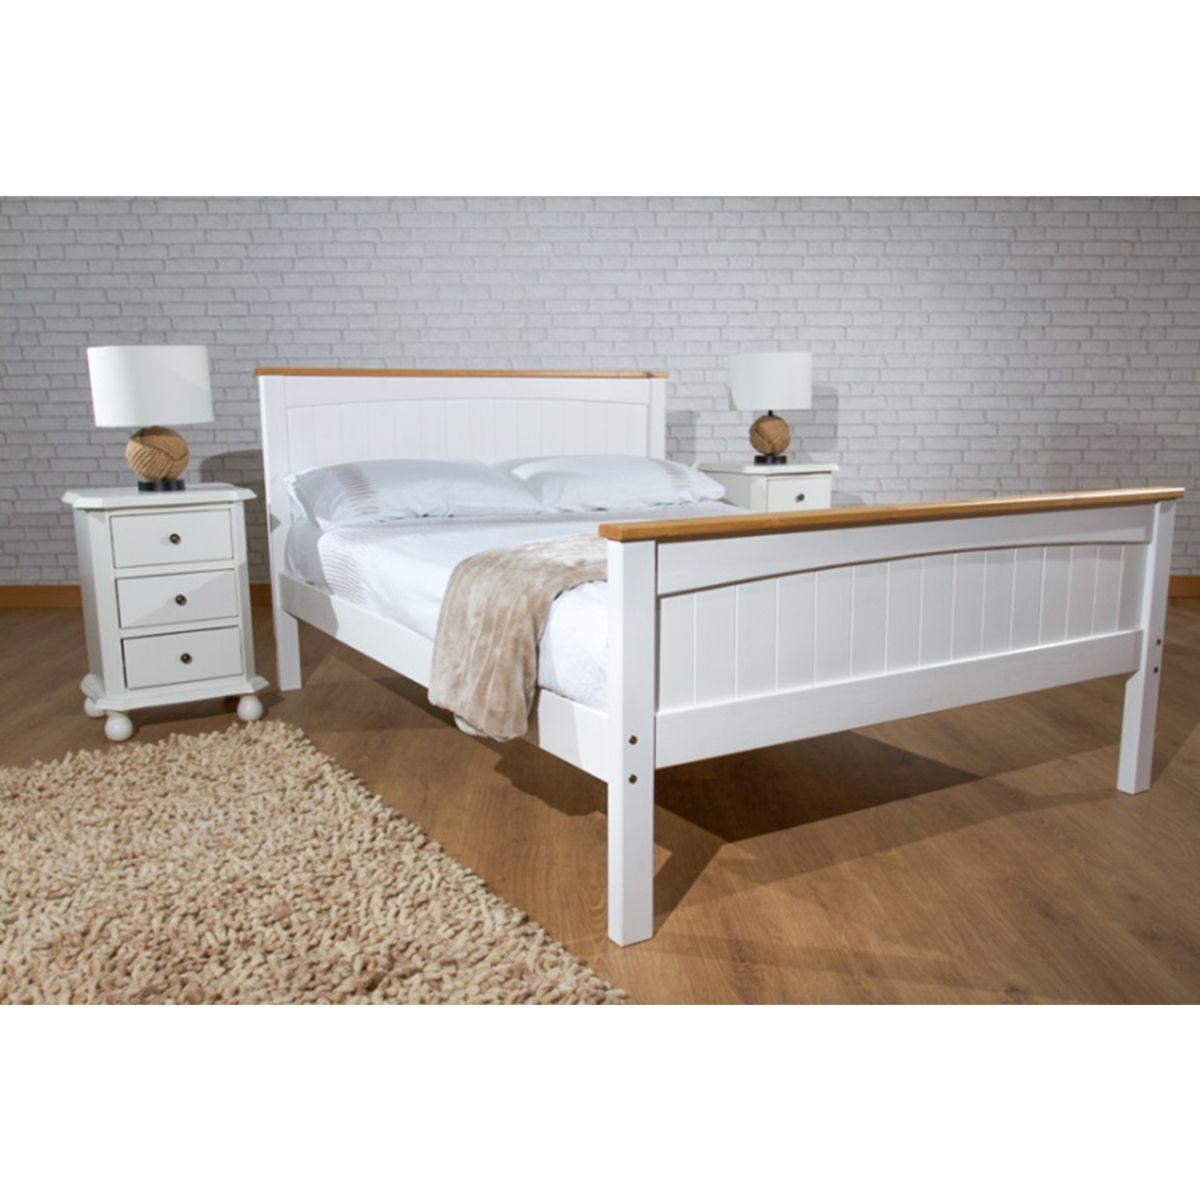 Dunte Bed Frame - White/Caramel Bar